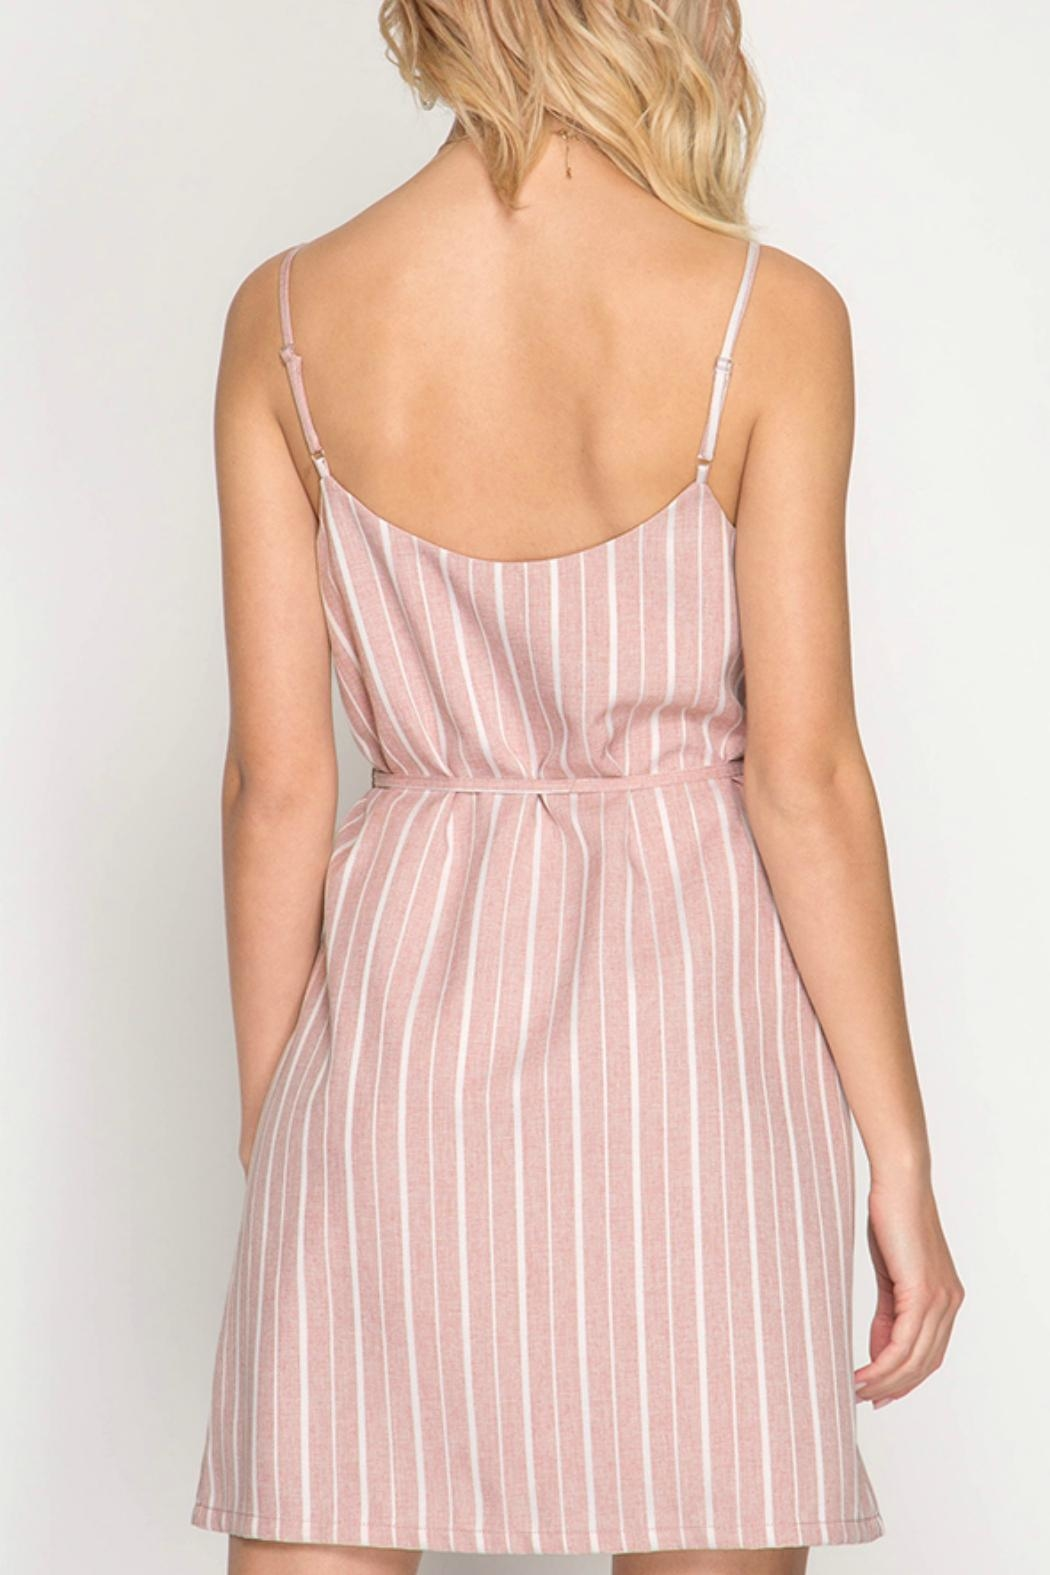 ALB Anchorage Pink Striped Shift-Dress - Front Full Image